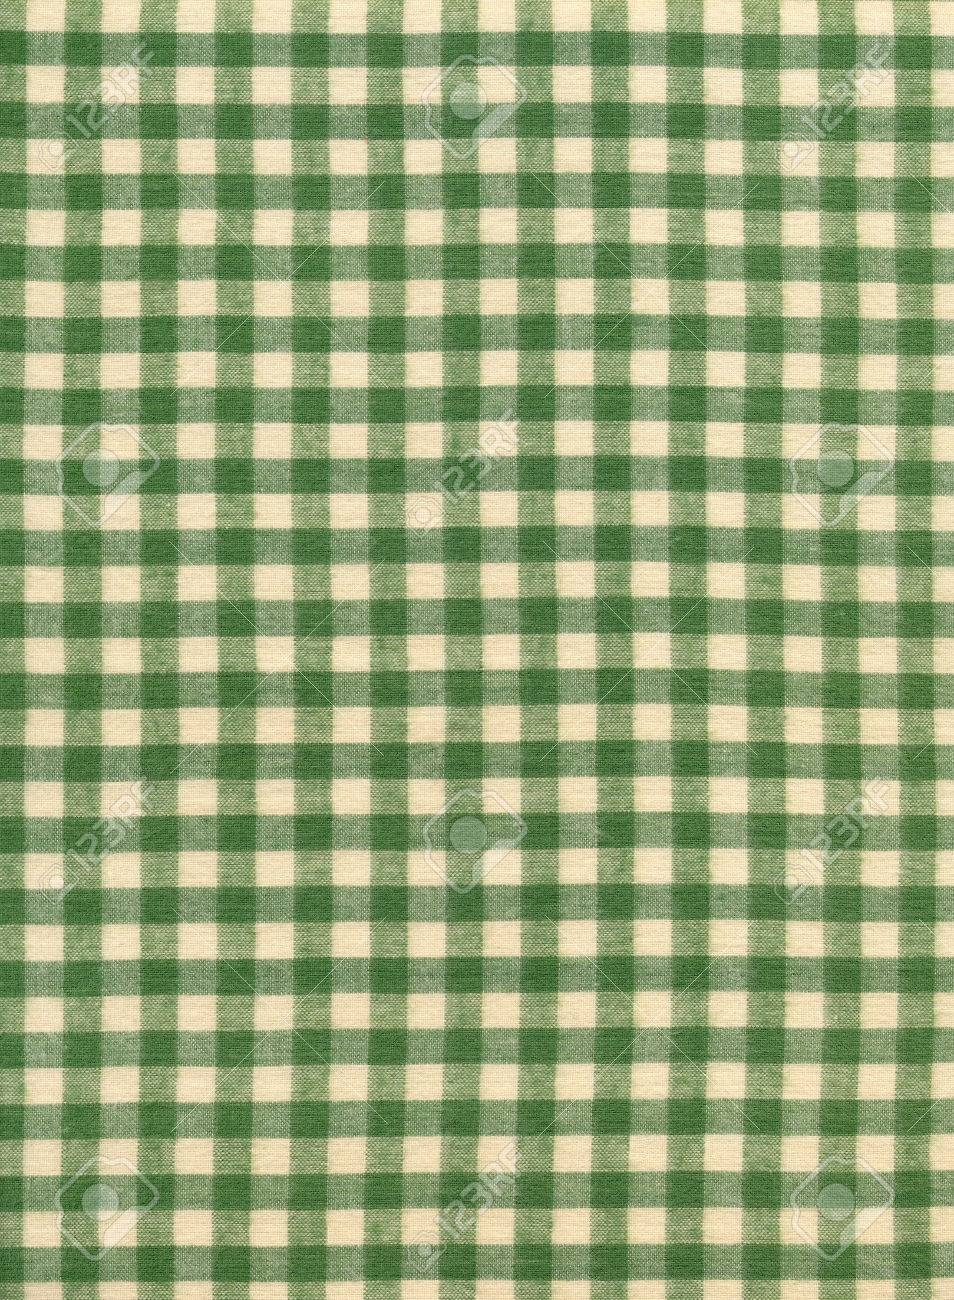 Green And White Checkered Tablecloth Textile Fabric Background Stock Photo,  Picture And Royalty Free Image. Image 24196423.